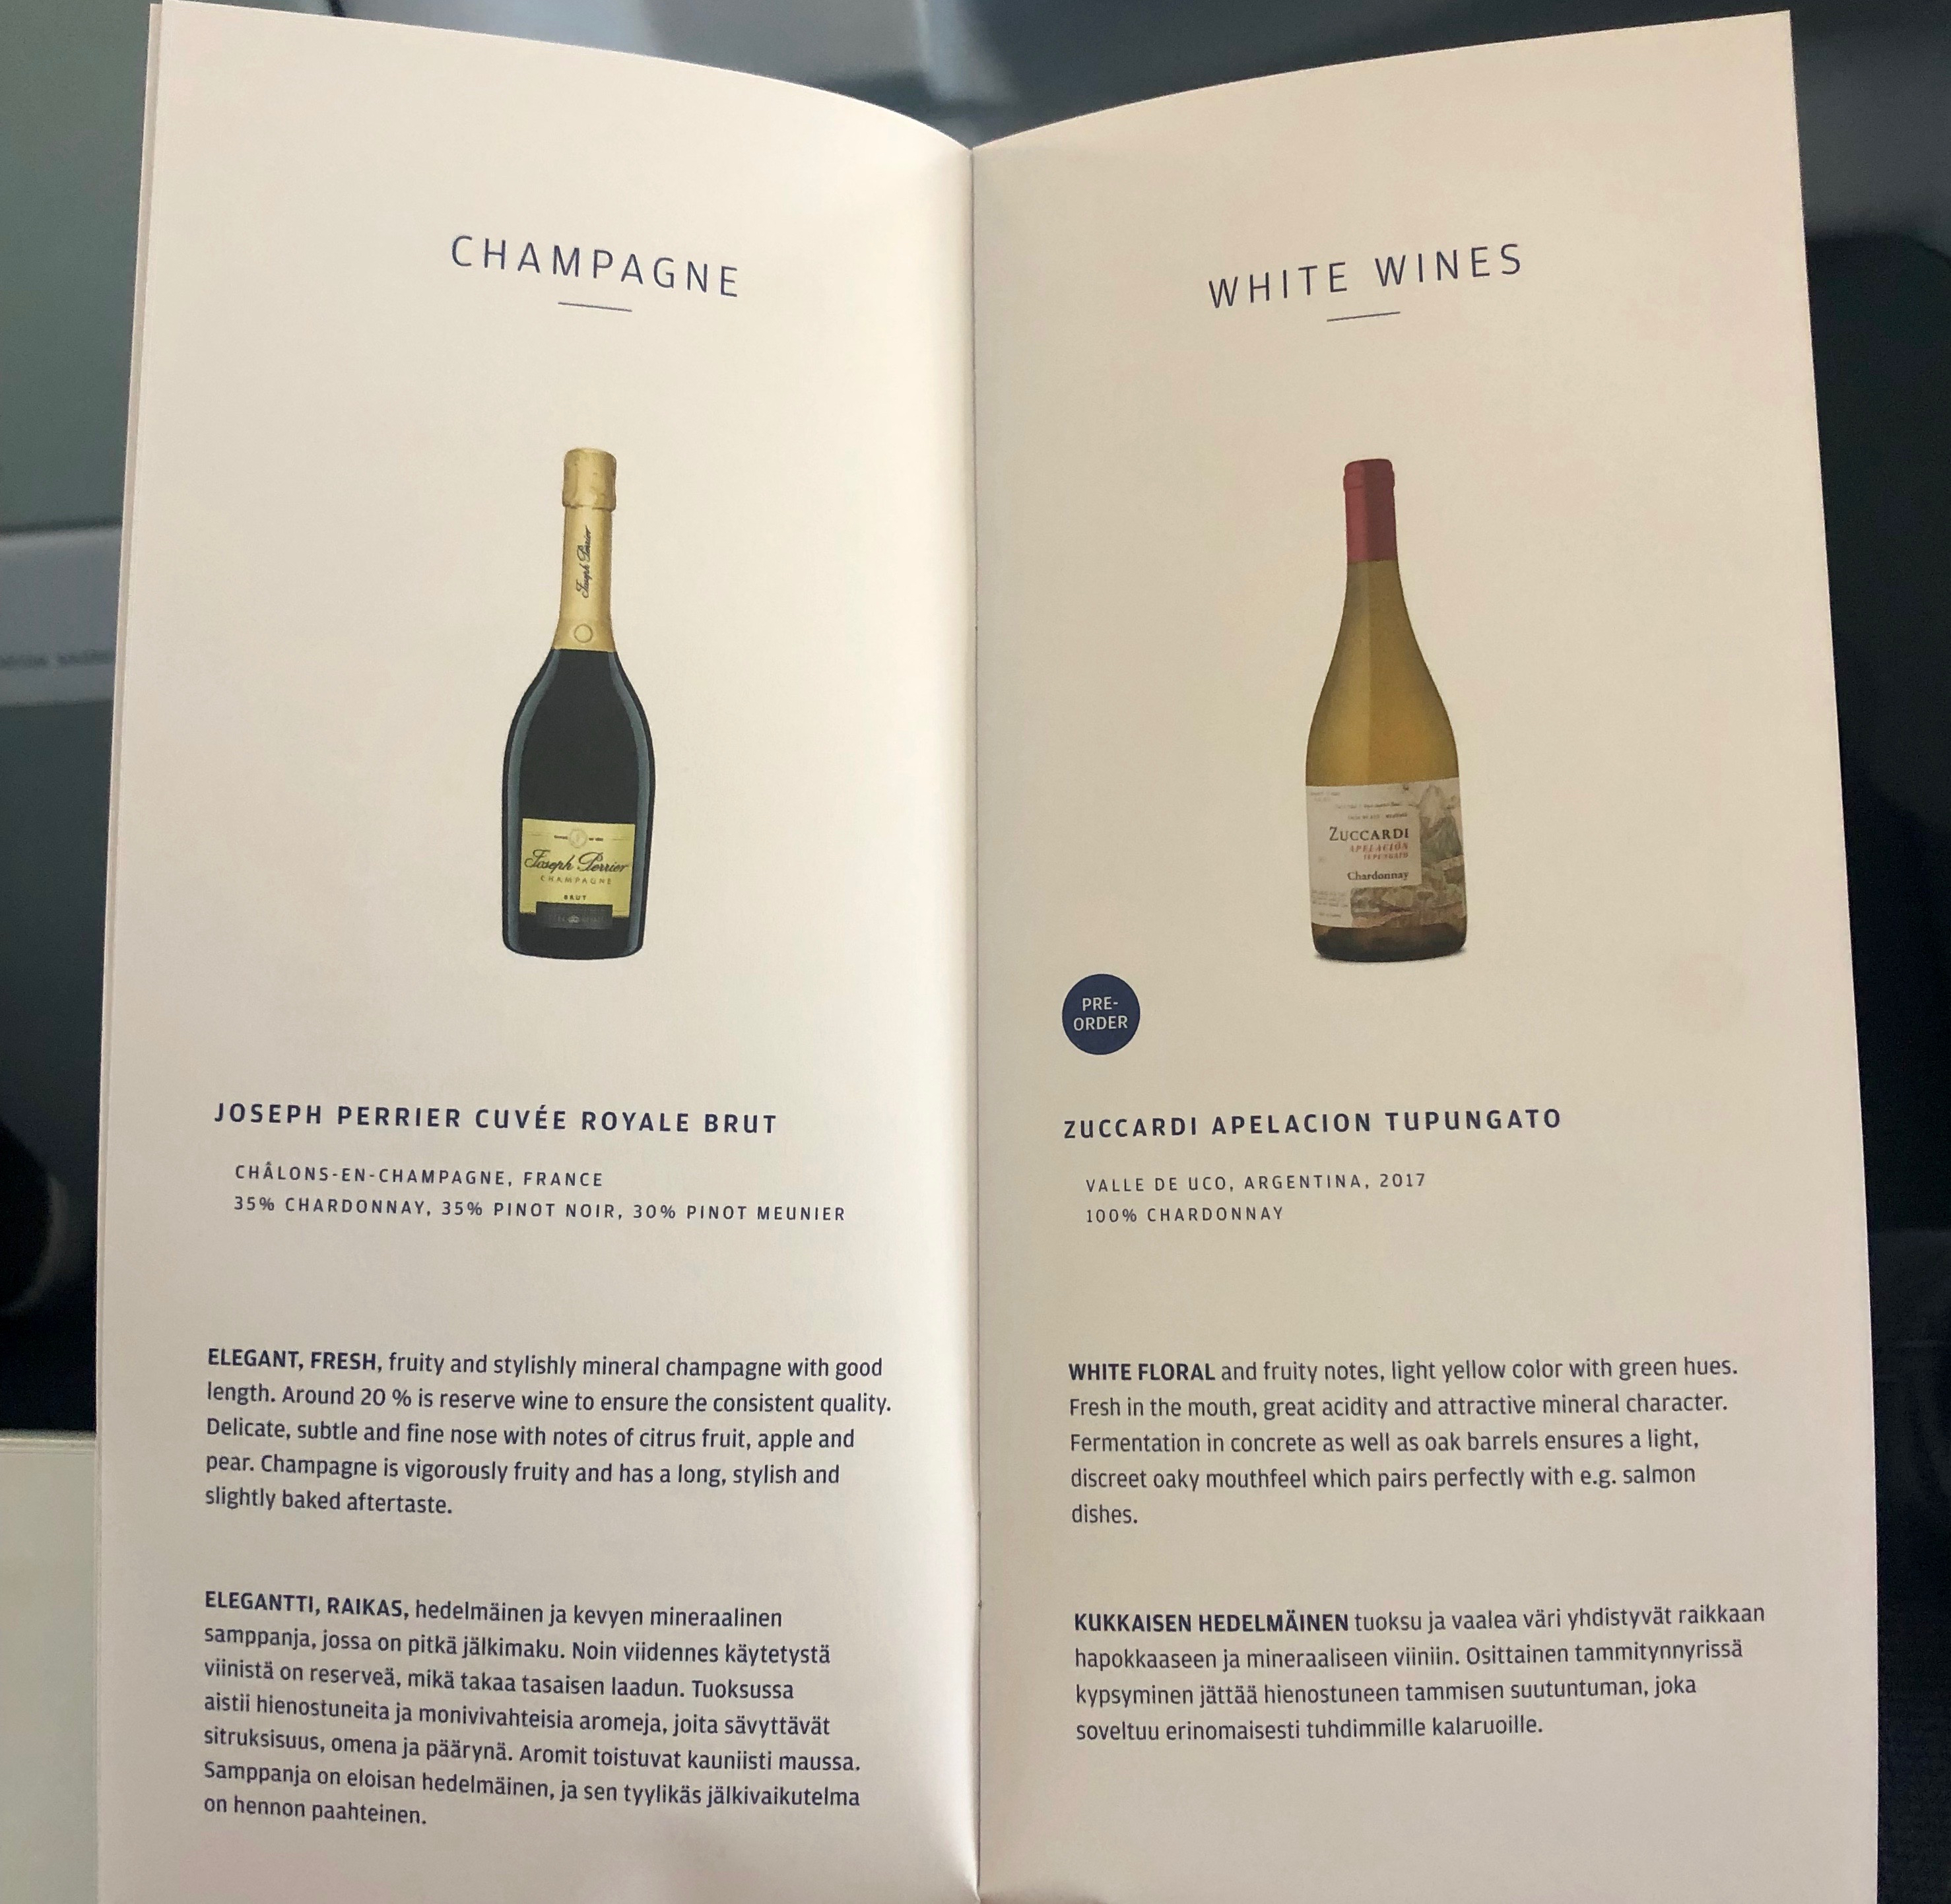 Finnair A330-300 JFK-HEL business class champagne and white wine menu